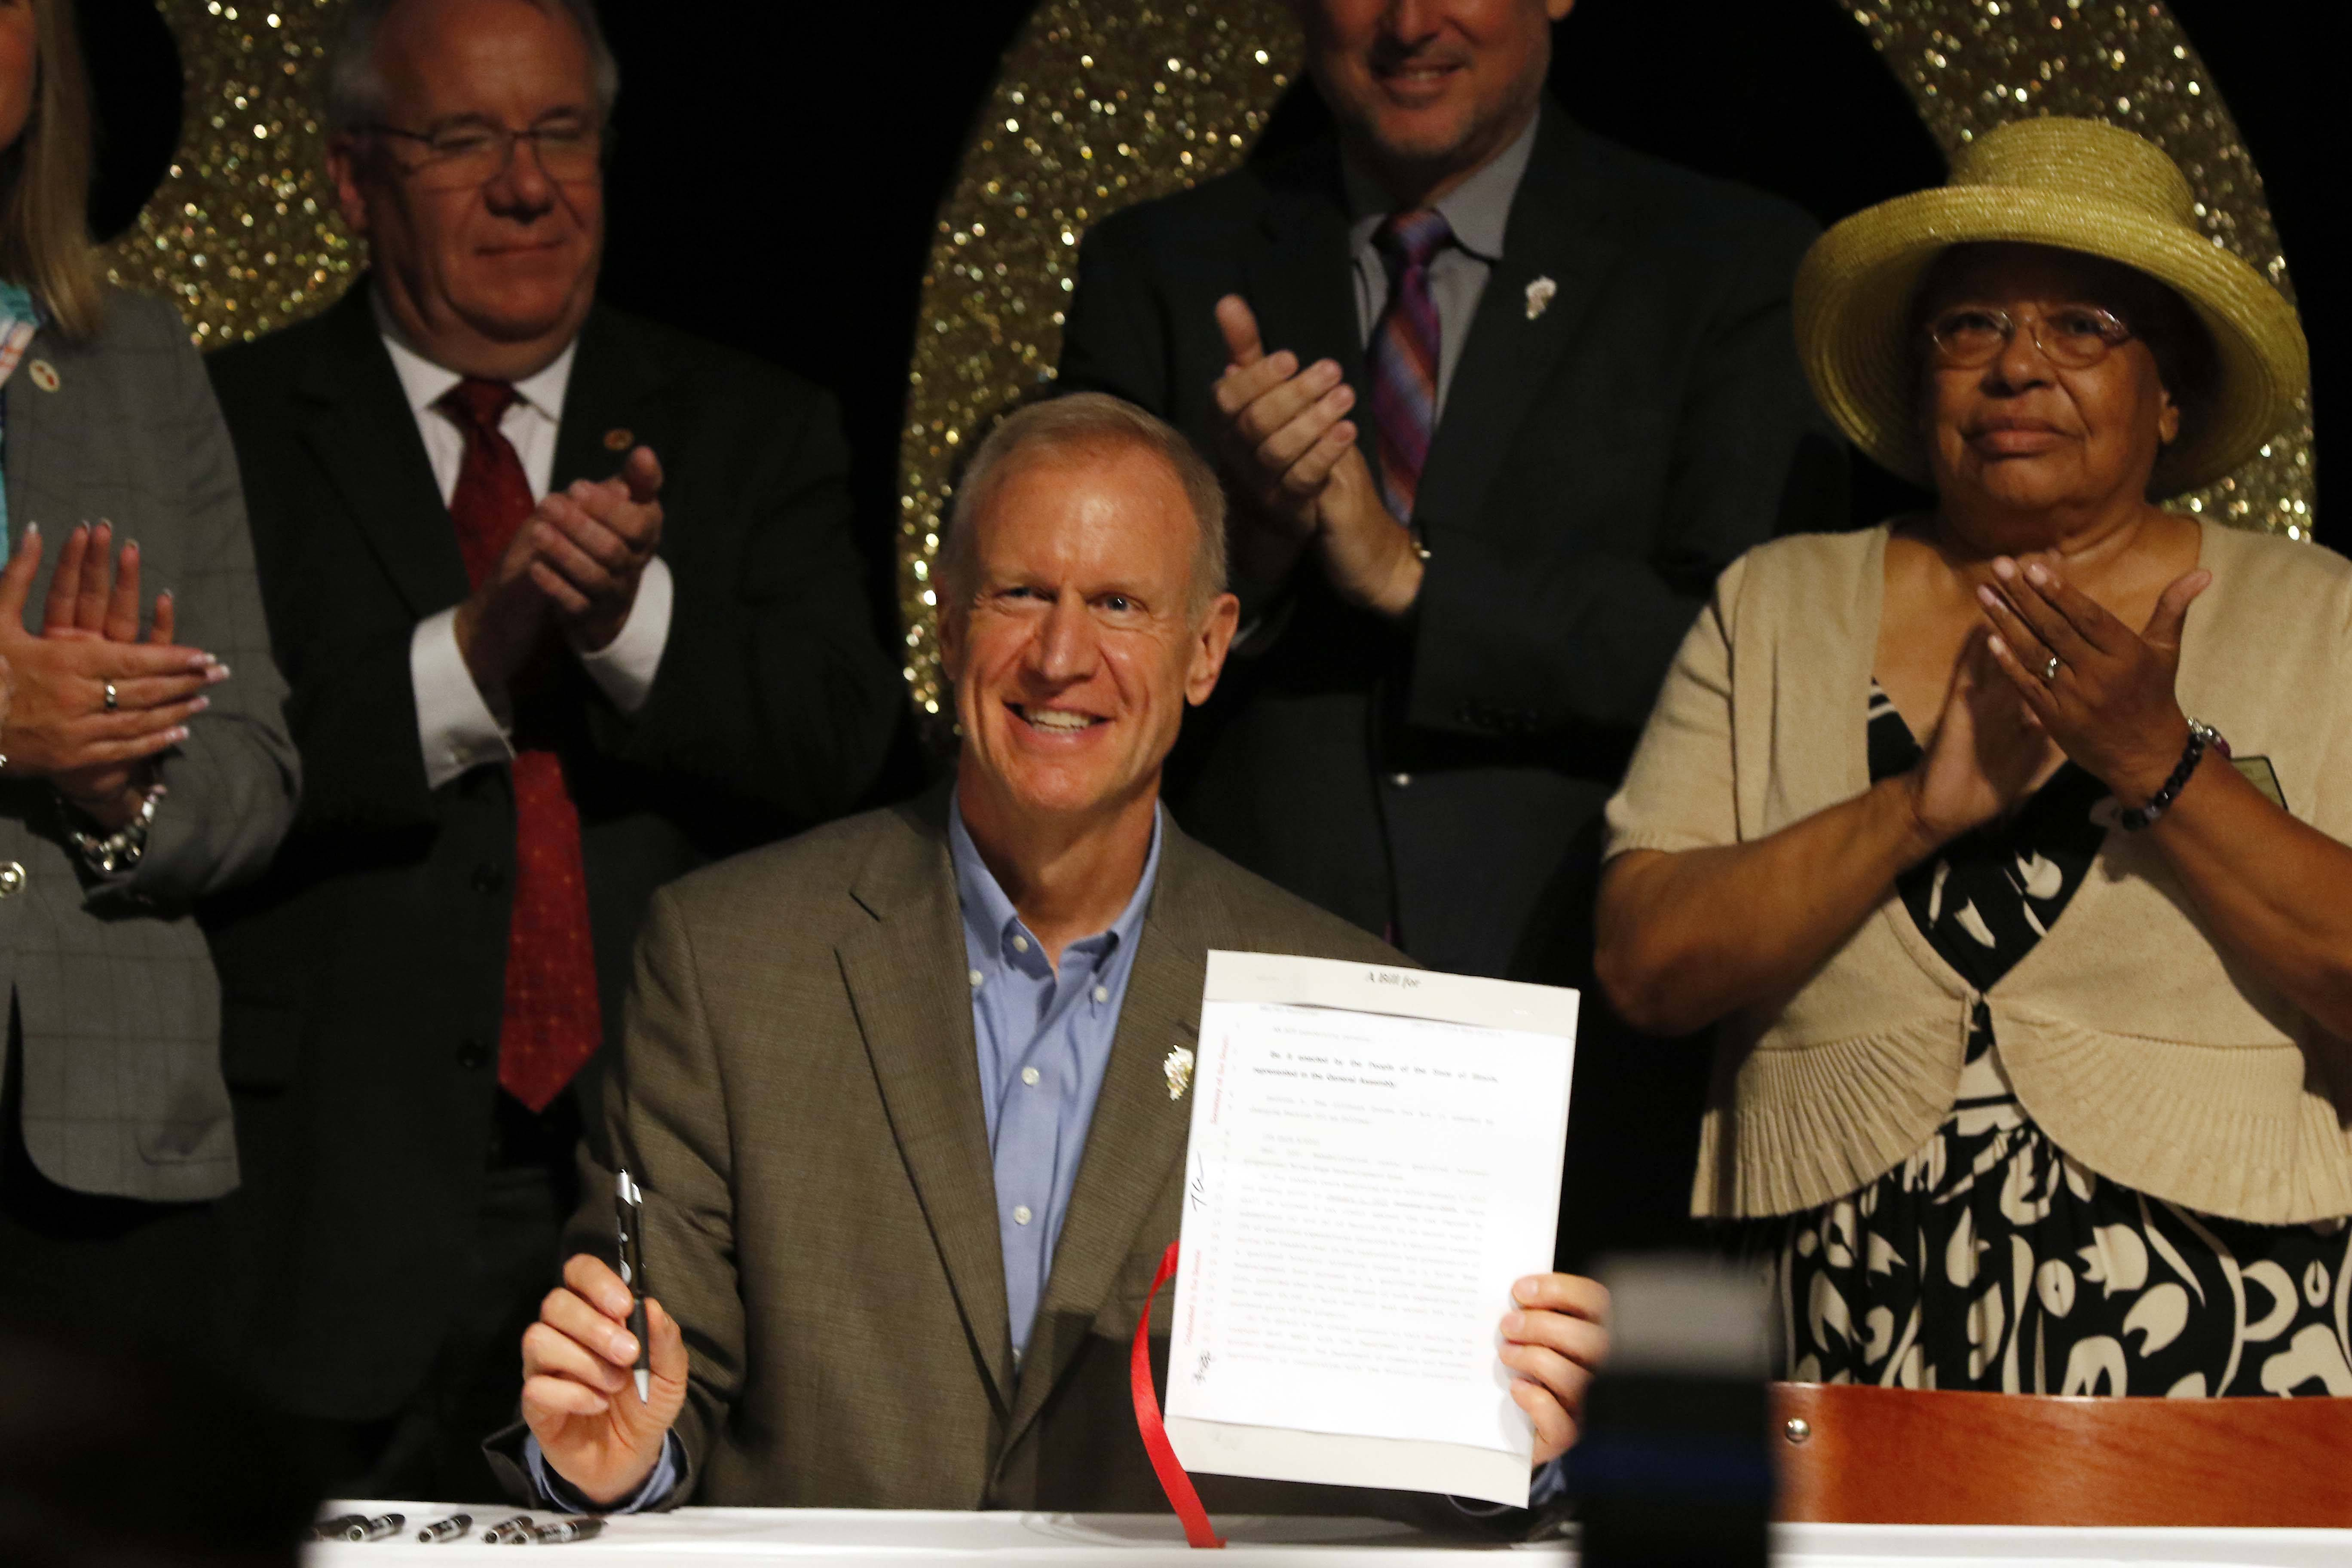 Gov. Bruce Rauner signs a bill Friday in Aurora that extends the River Edge Redevelopment Zone Historic Tax Credit to help cities including Aurora and Elgin revitalize old properties.